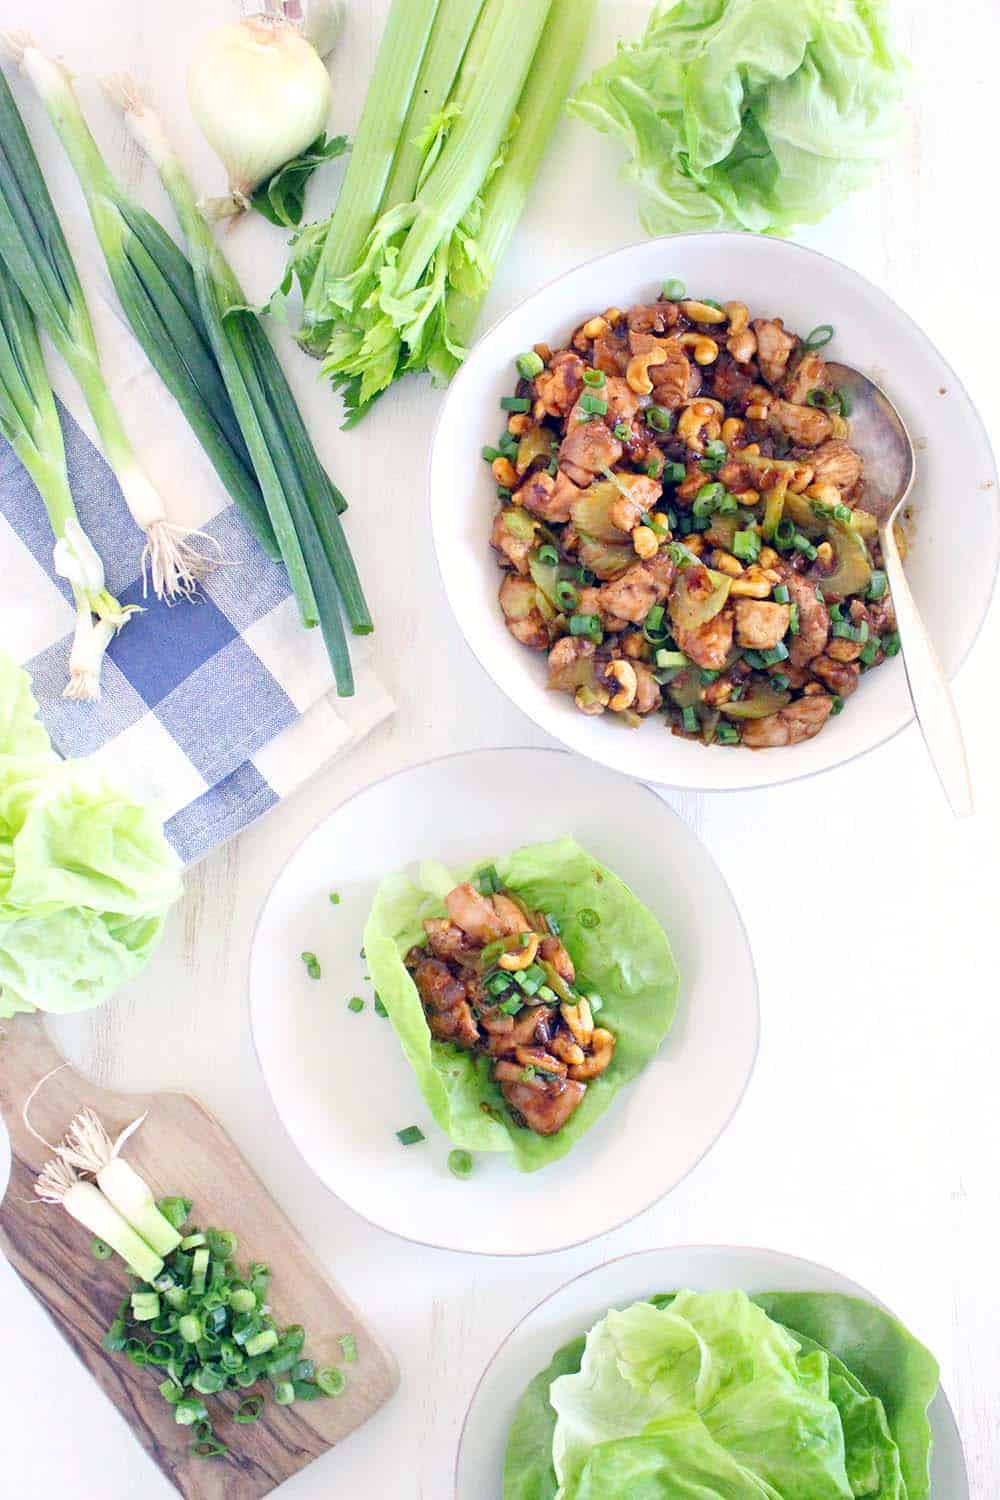 Bird's eye view of a bowl of chicken and cashew mixture next to a plate with an open leaf of lettuce with some of the mixture in the middle.